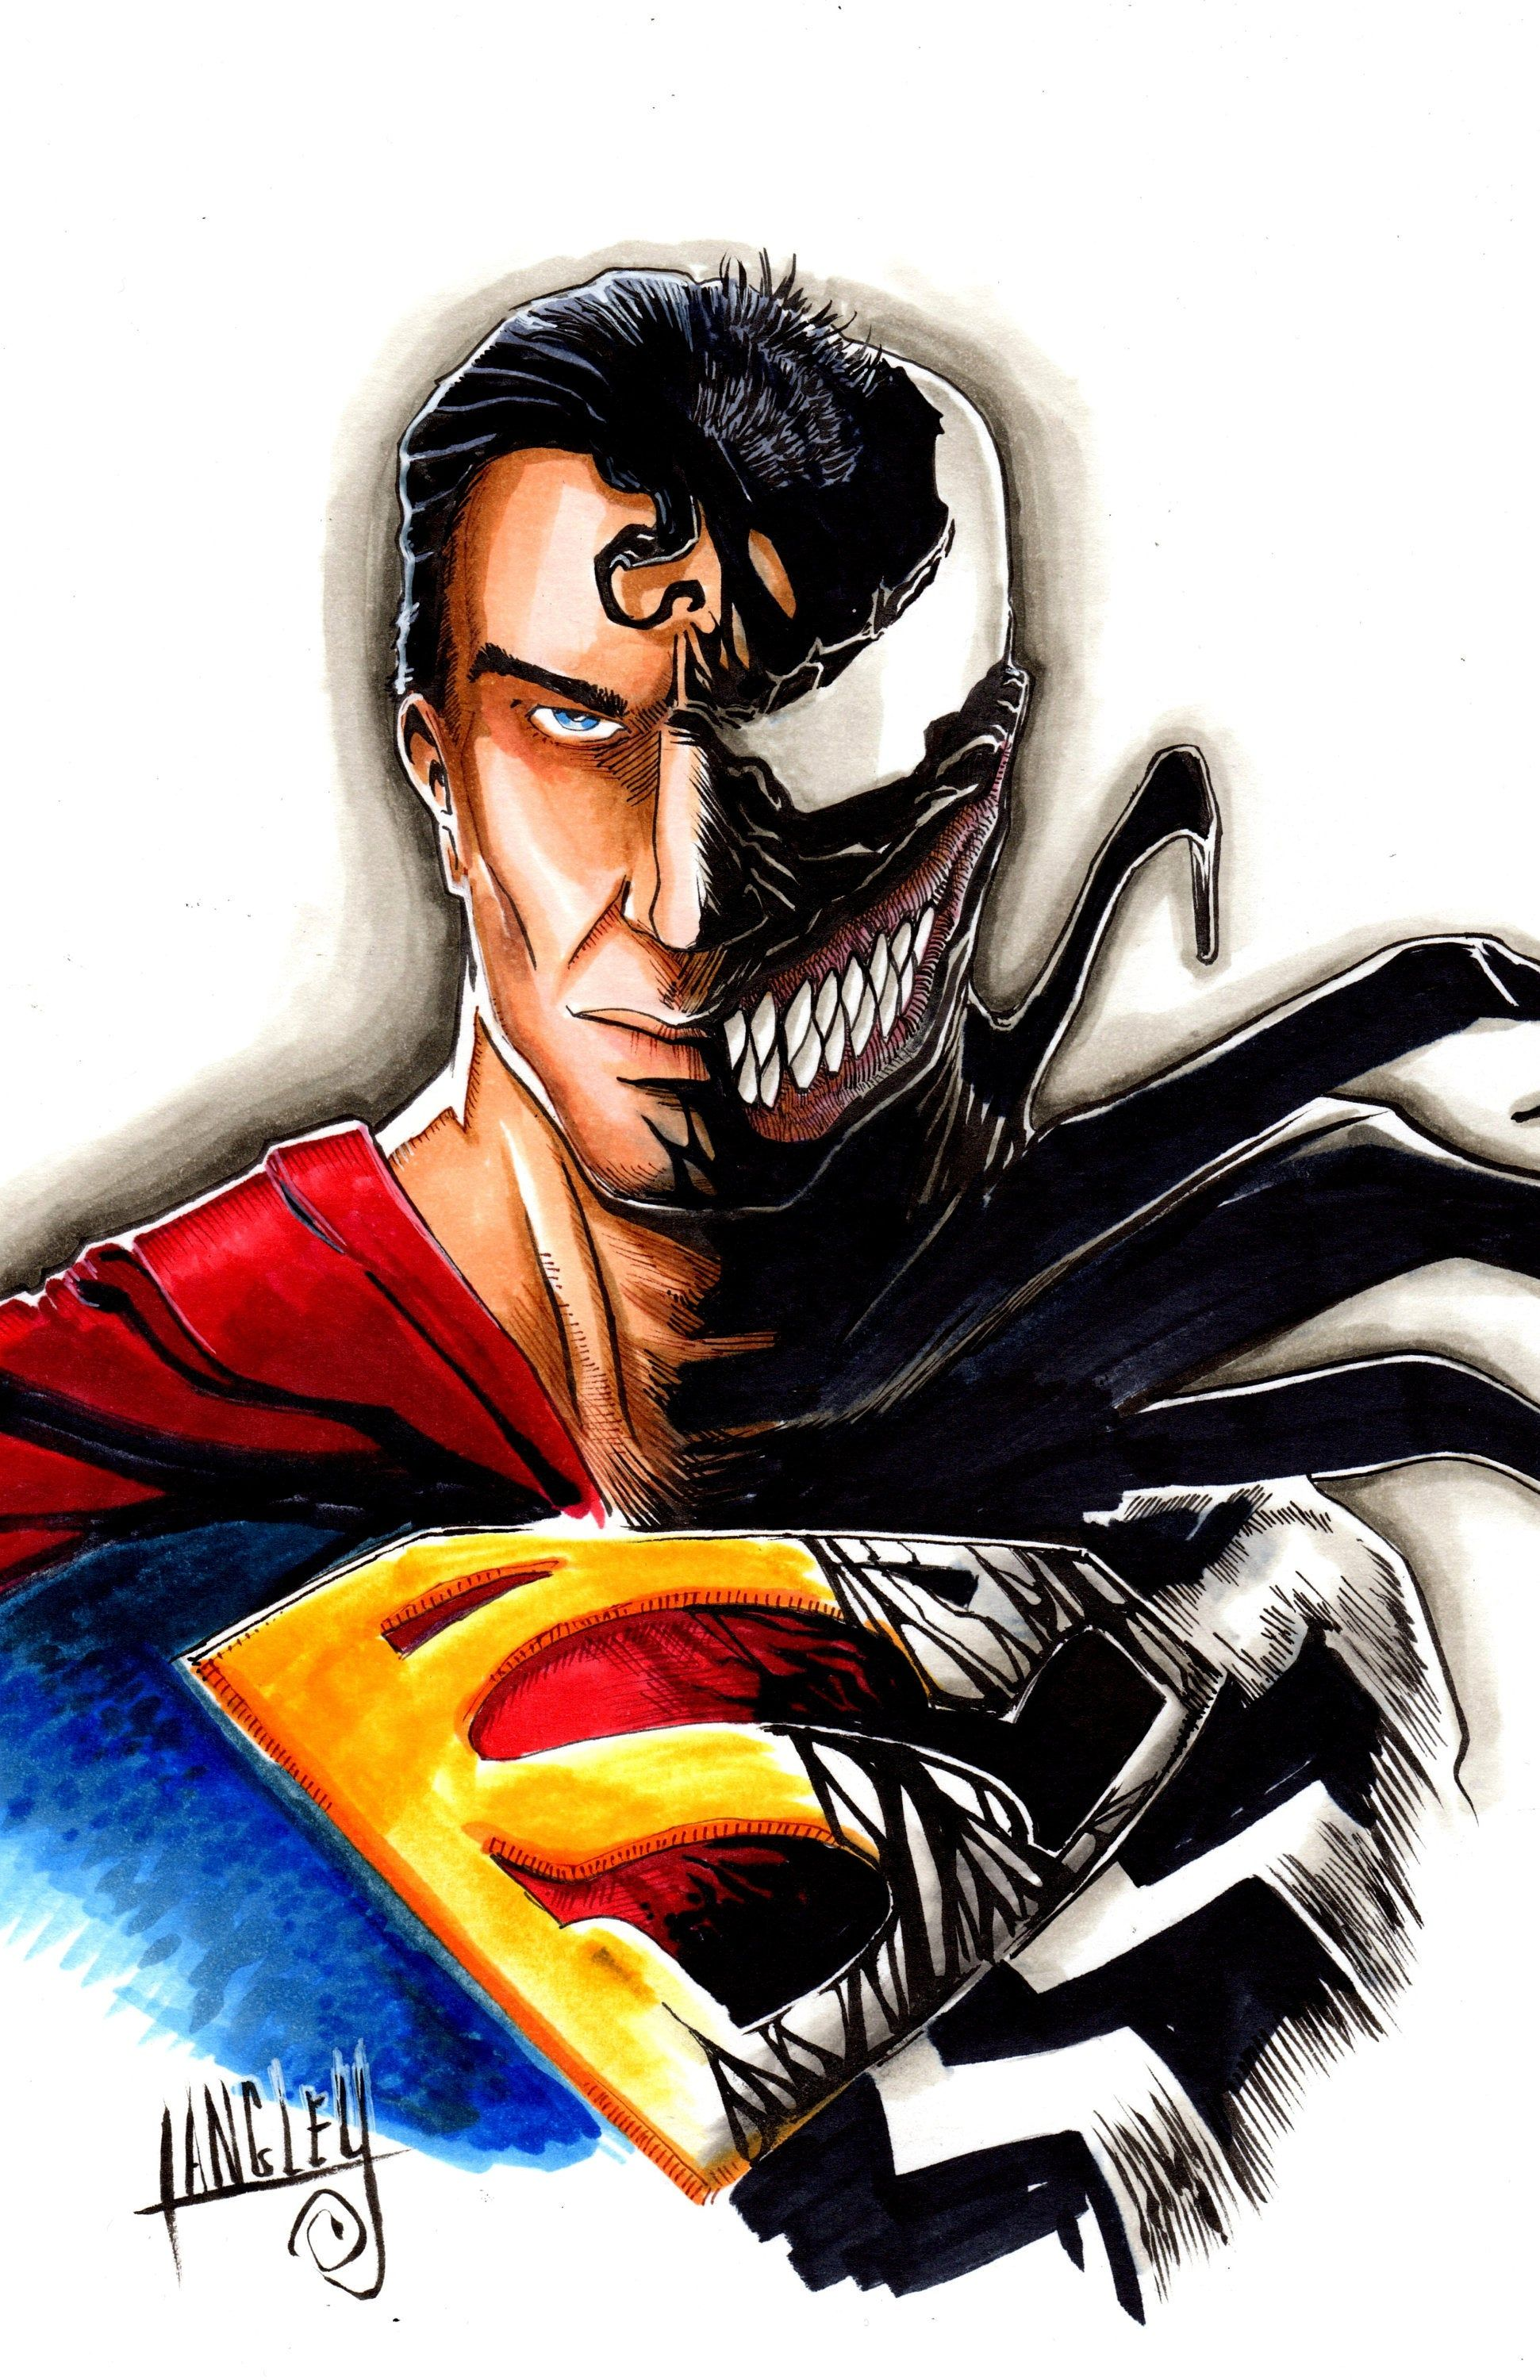 Venom Superman Mashup Signed 11x17 Art Print Etsy Dc Comics Artwork Comic Art Comics Artwork